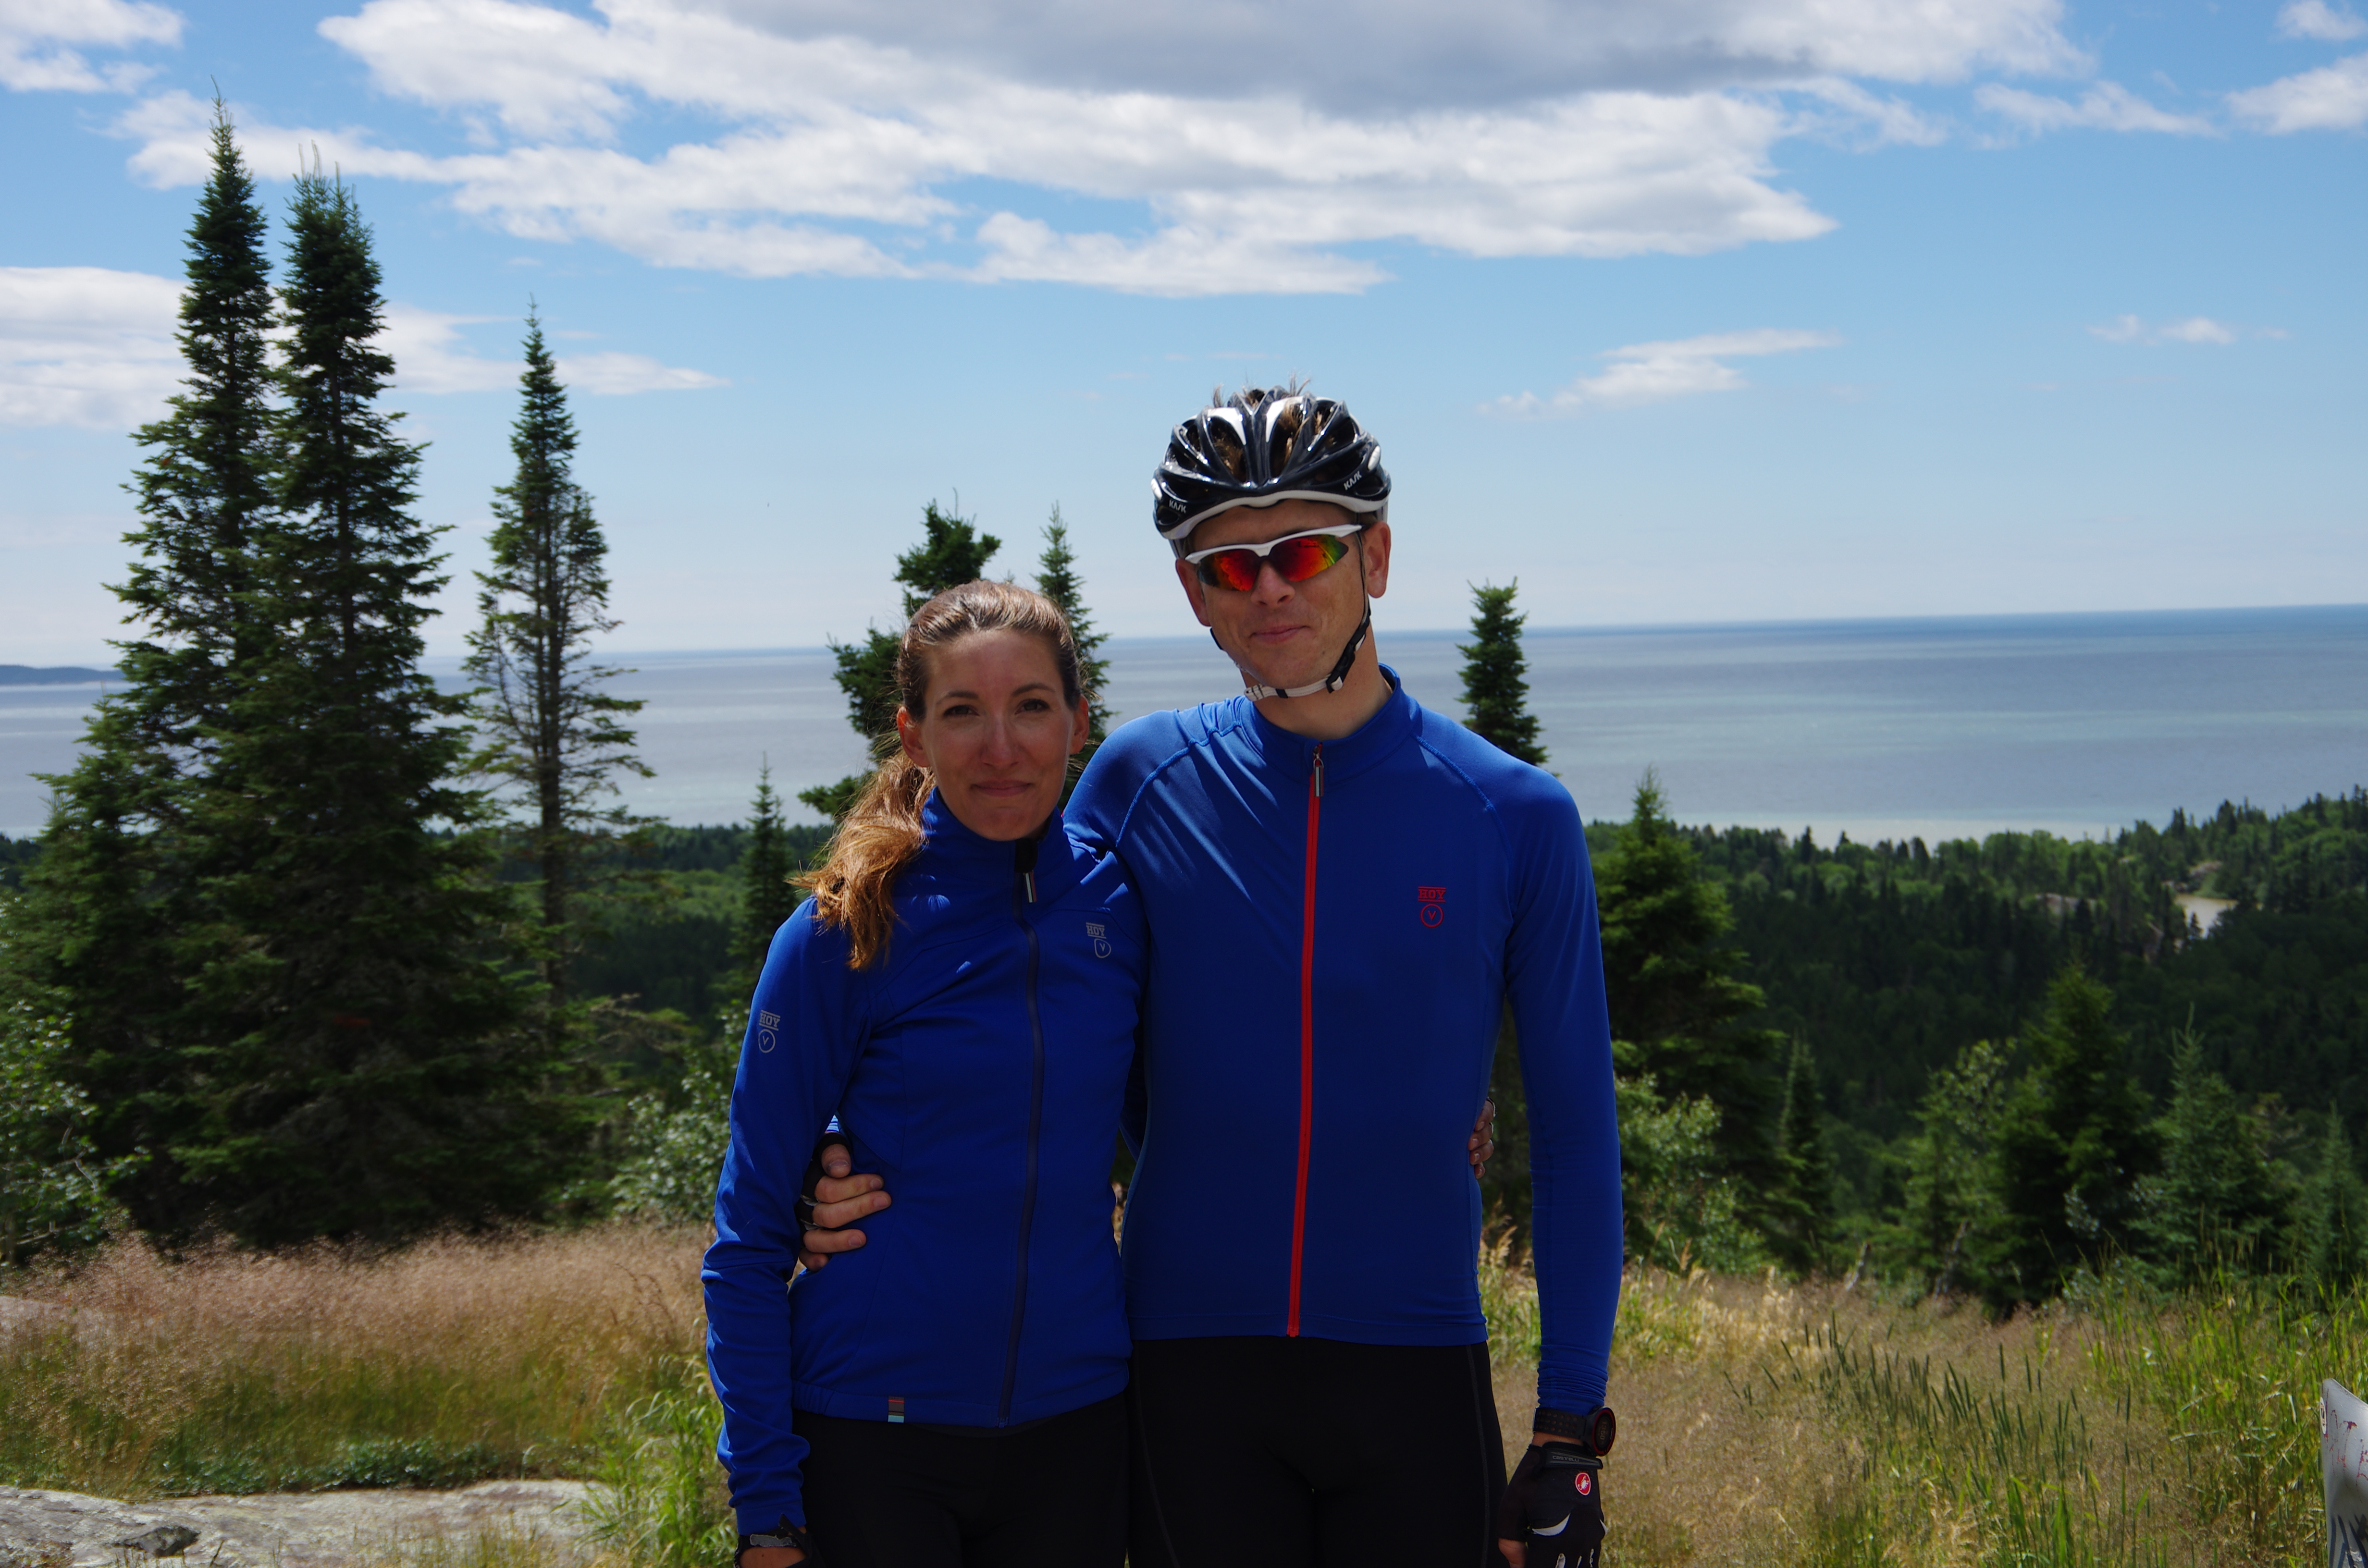 Michelle and her riding partner, Nathan.